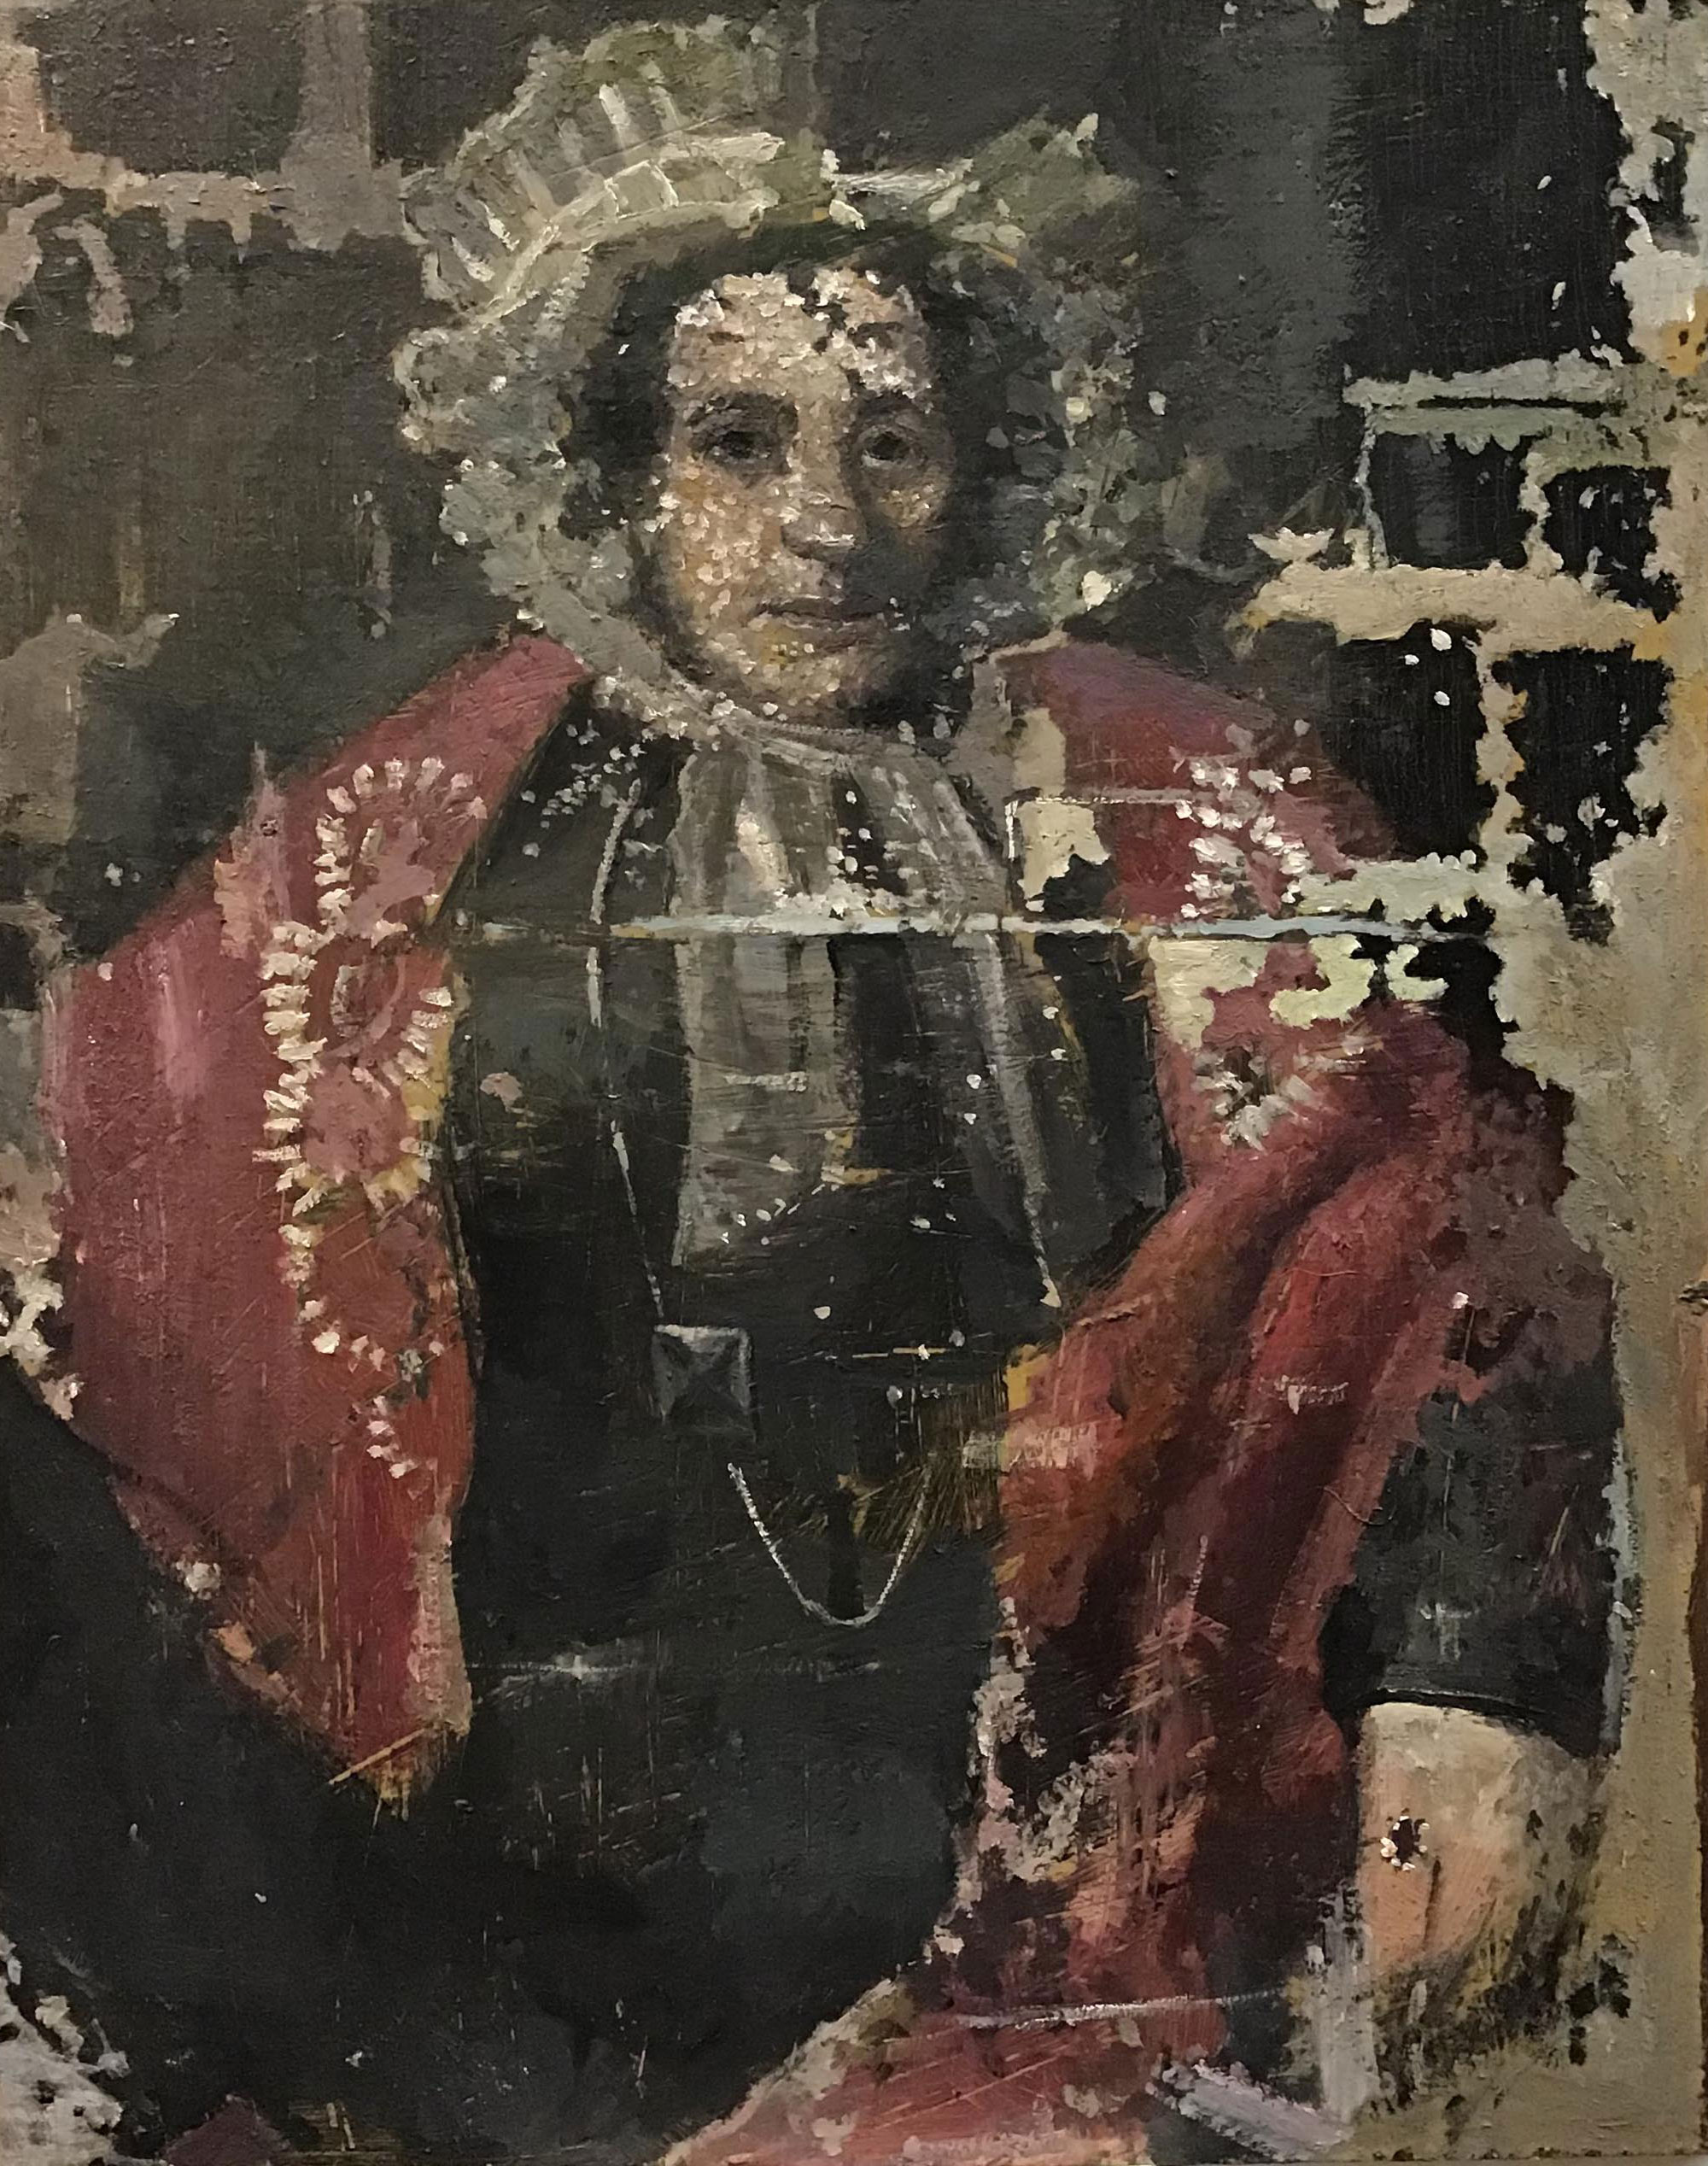 Hadyn Wilson painting in response to Portrait of Winefred Redmond by Maurice Felton, 1841